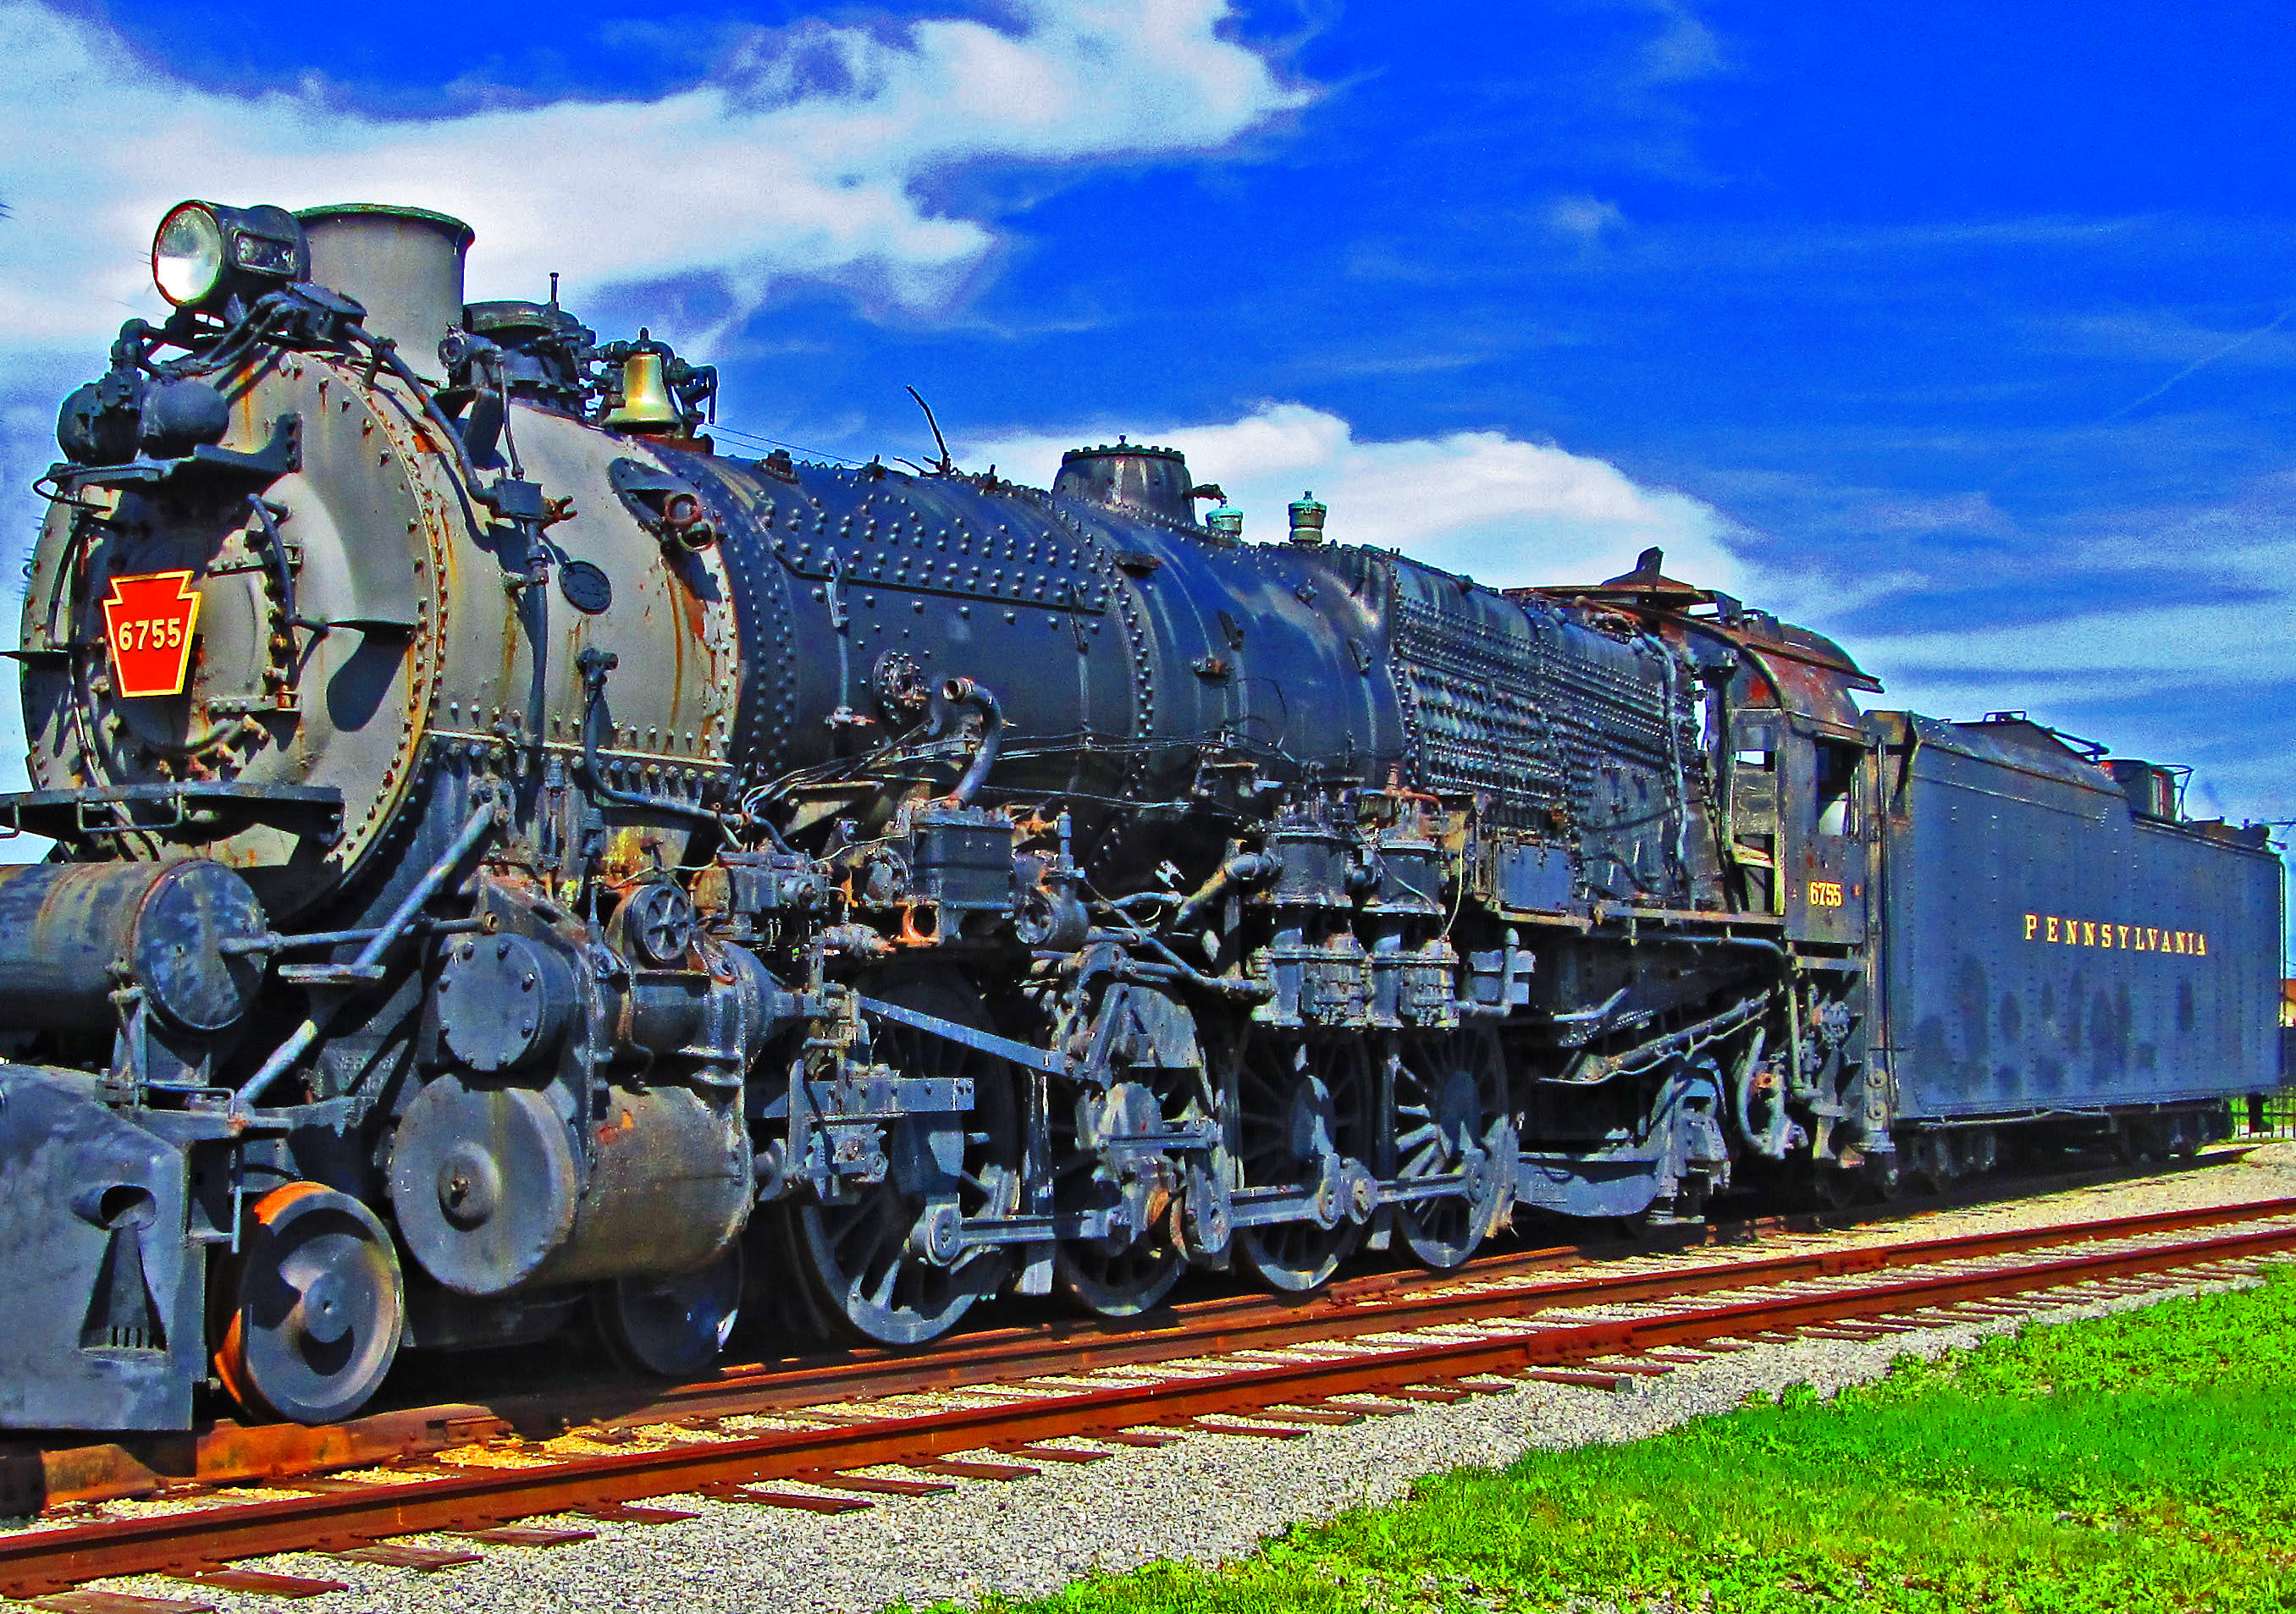 Pennsylvania Railroad M1 Heavy Duty Locomotive